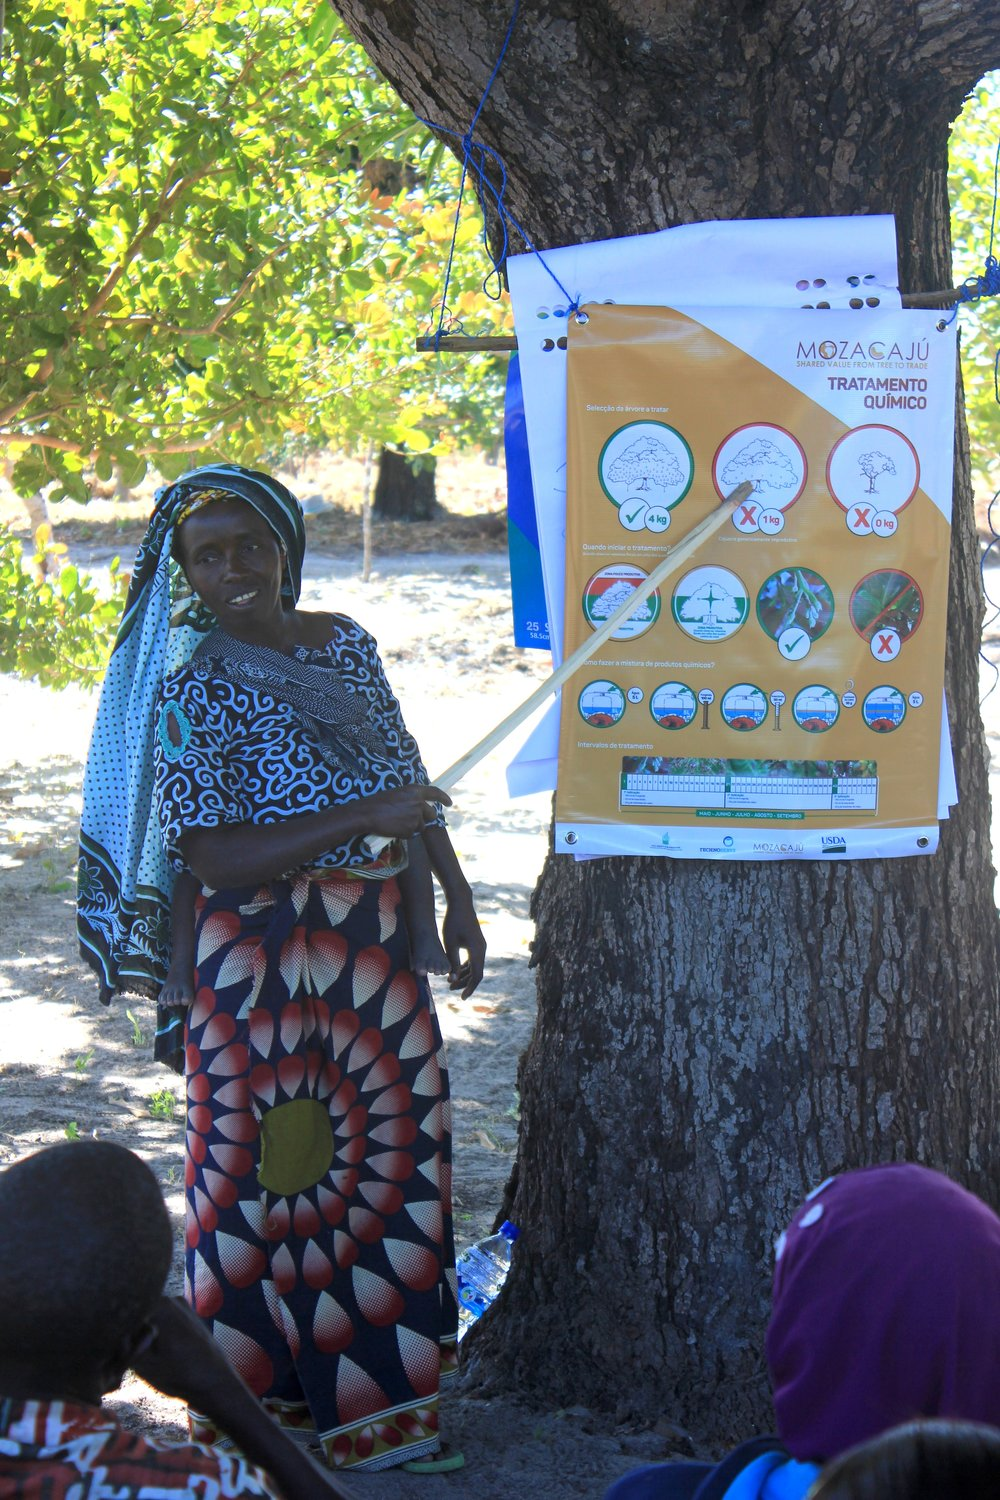 Mocímboa da Praia district, Cabo Delgado province  - Sofia Momade, farmer and promoter, explains how to protect cashew trees from pests and disease |  Sofia Momade, produtora e promotora, explica como proteger cajueiros de pragas e doenças